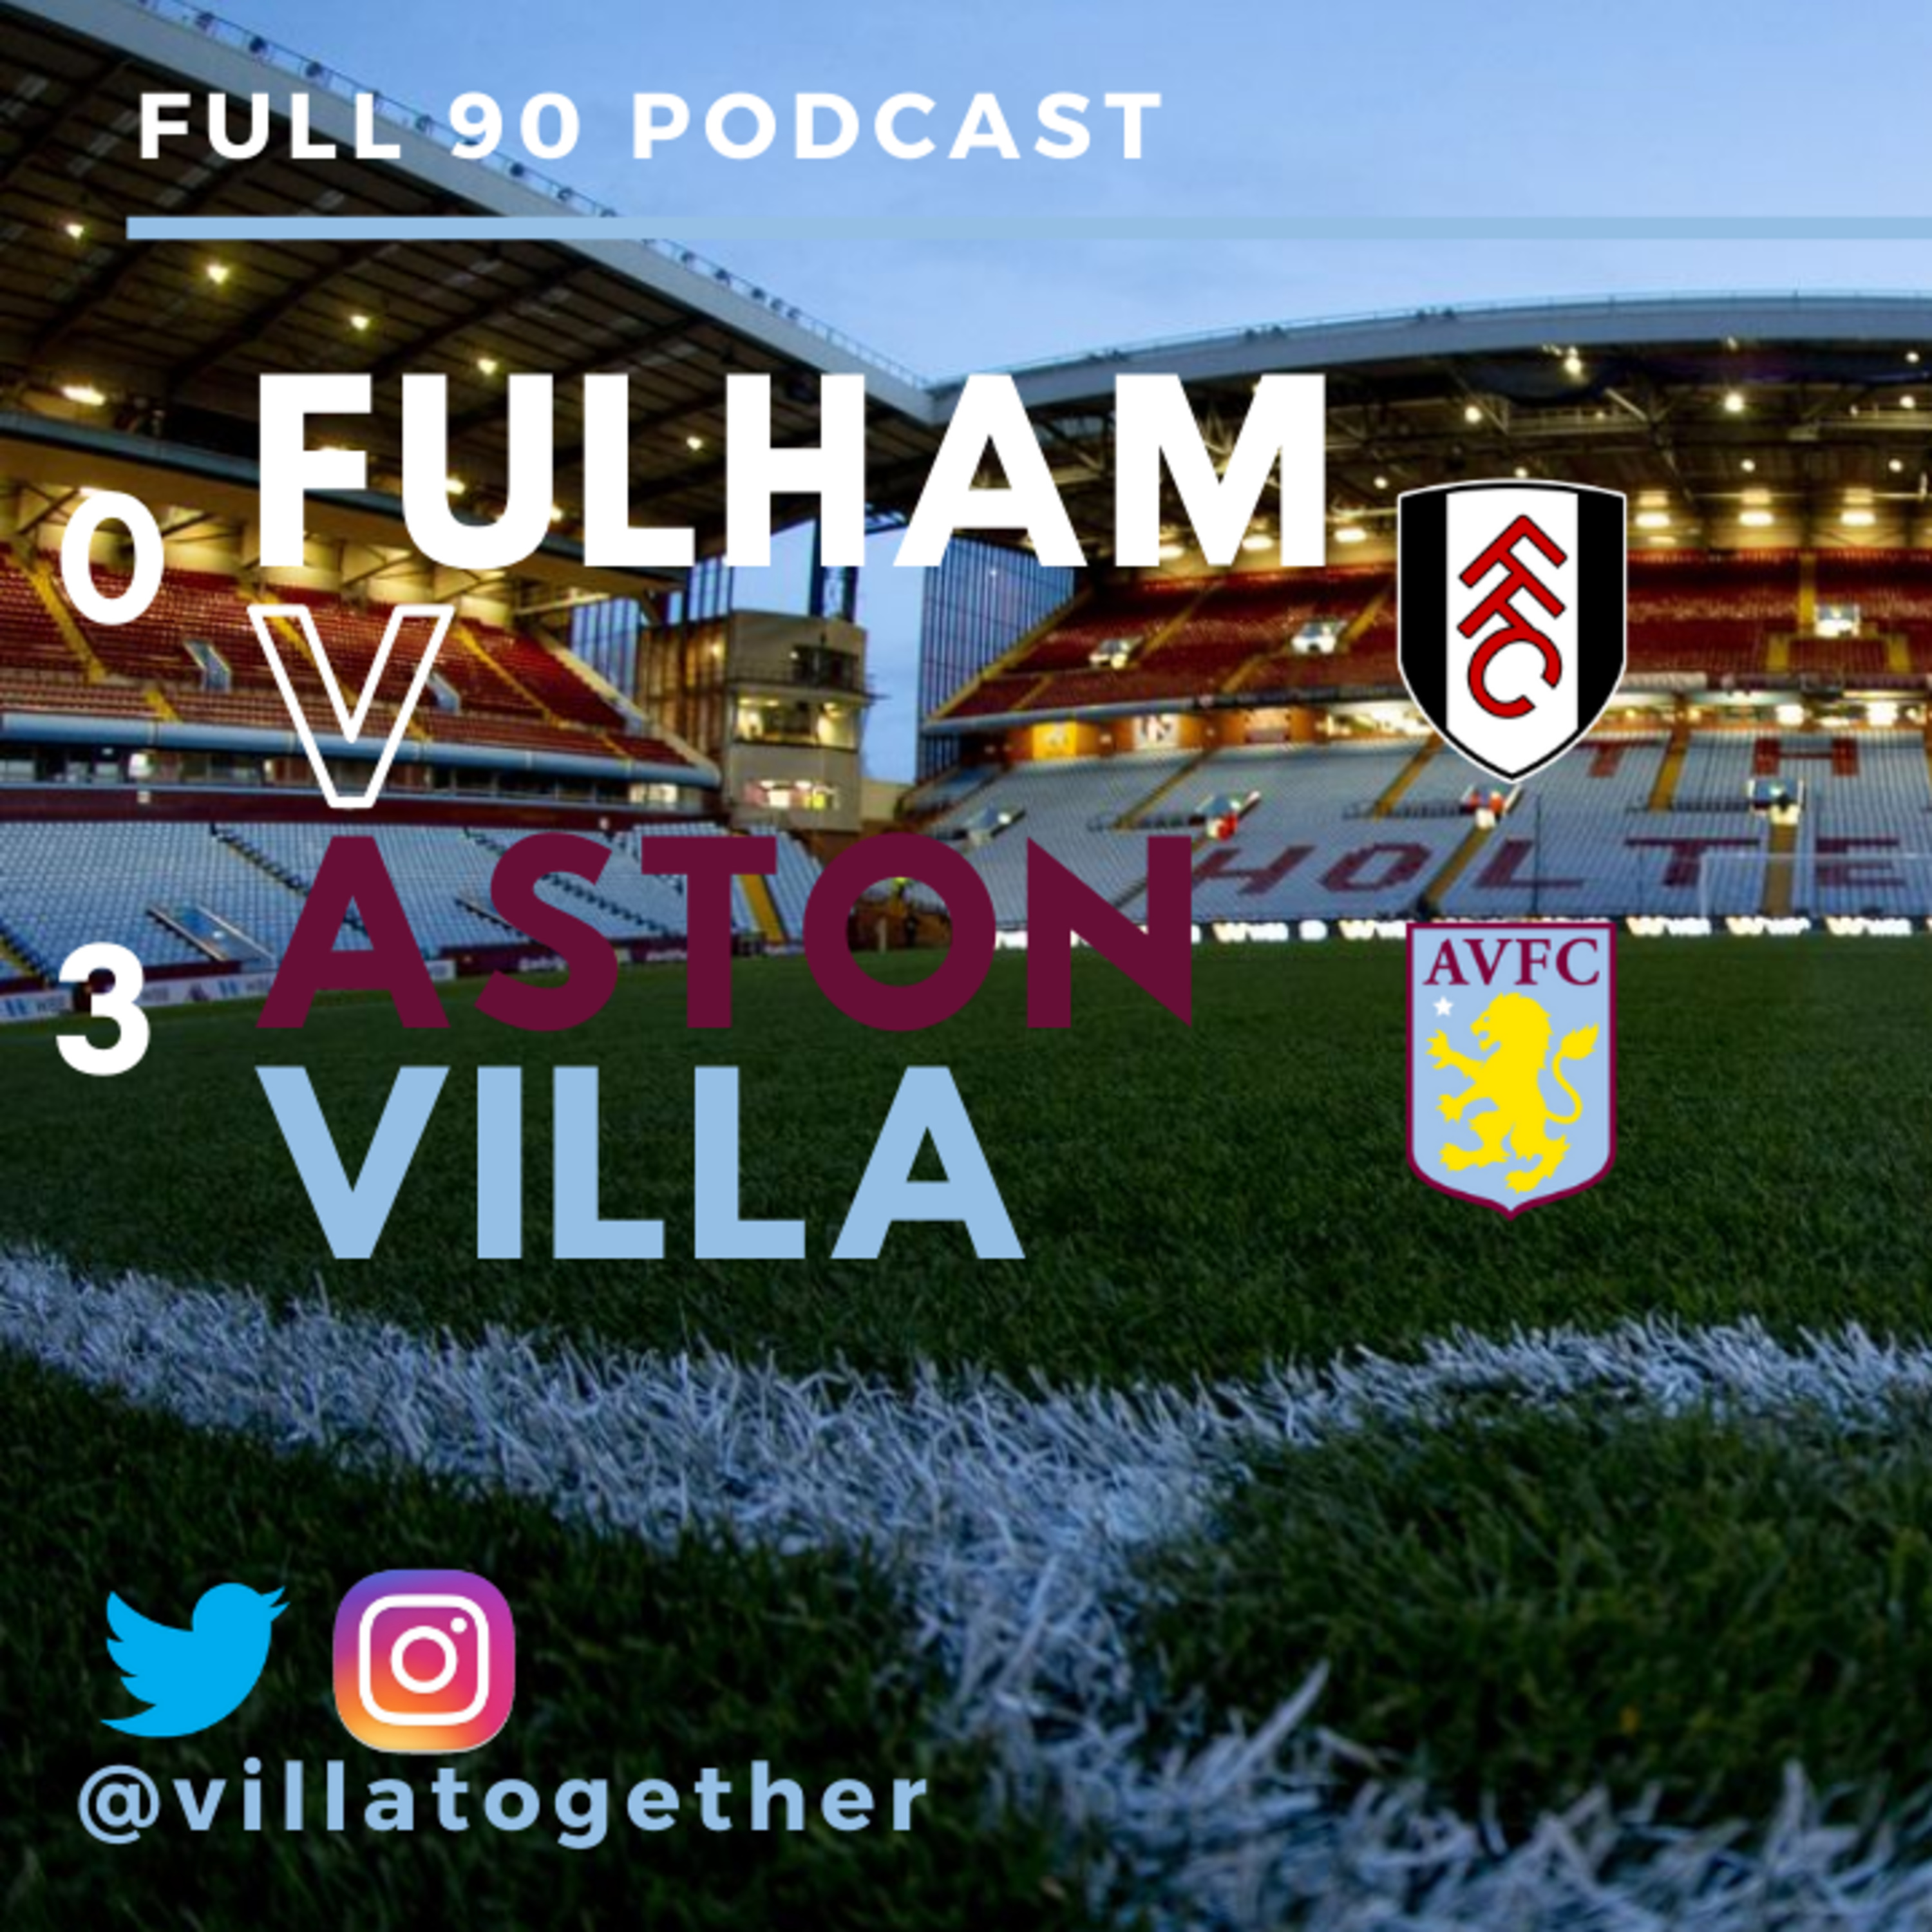 Villa Together - The Full 90 Podcast